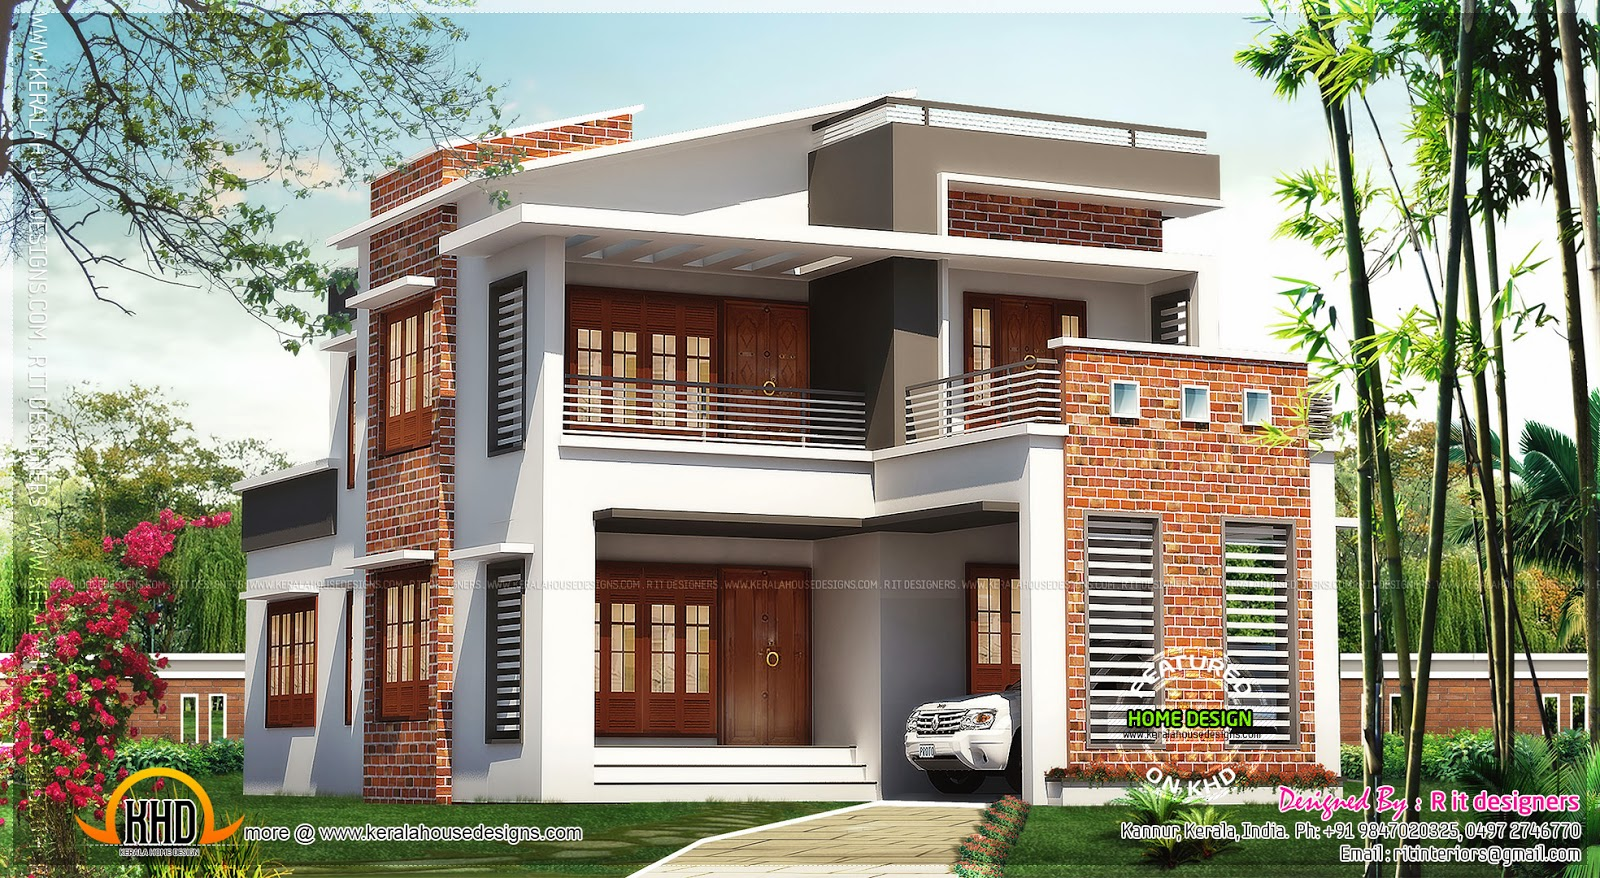 Brick mix house exterior design kerala home design and for Building exterior design